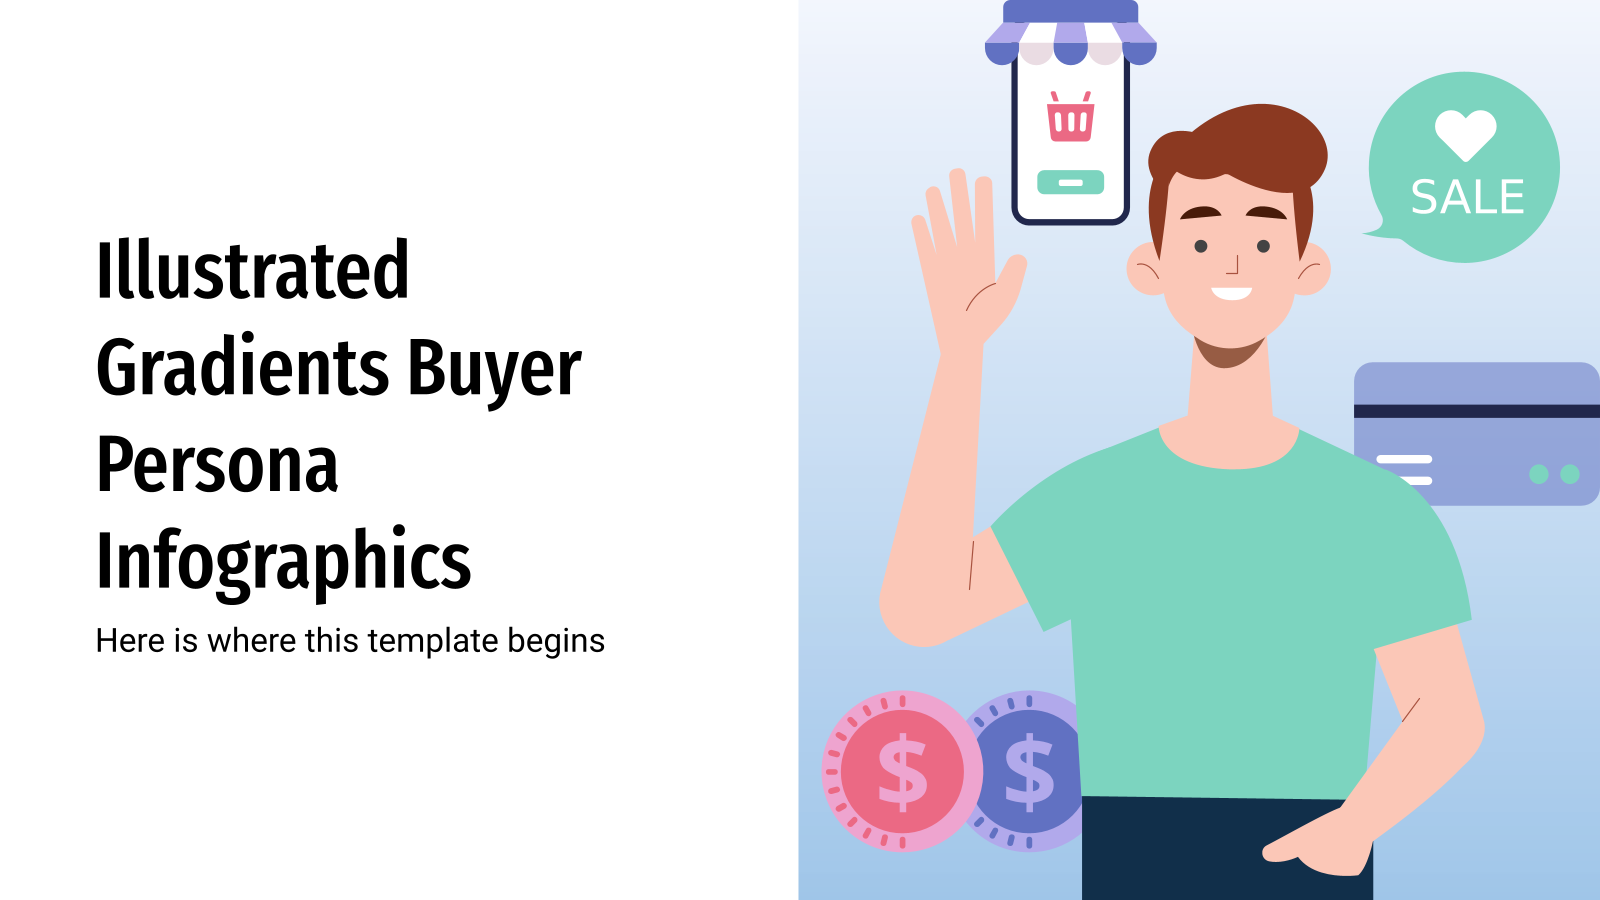 Illustrated Gradients Buyer Persona Infographics presentation template